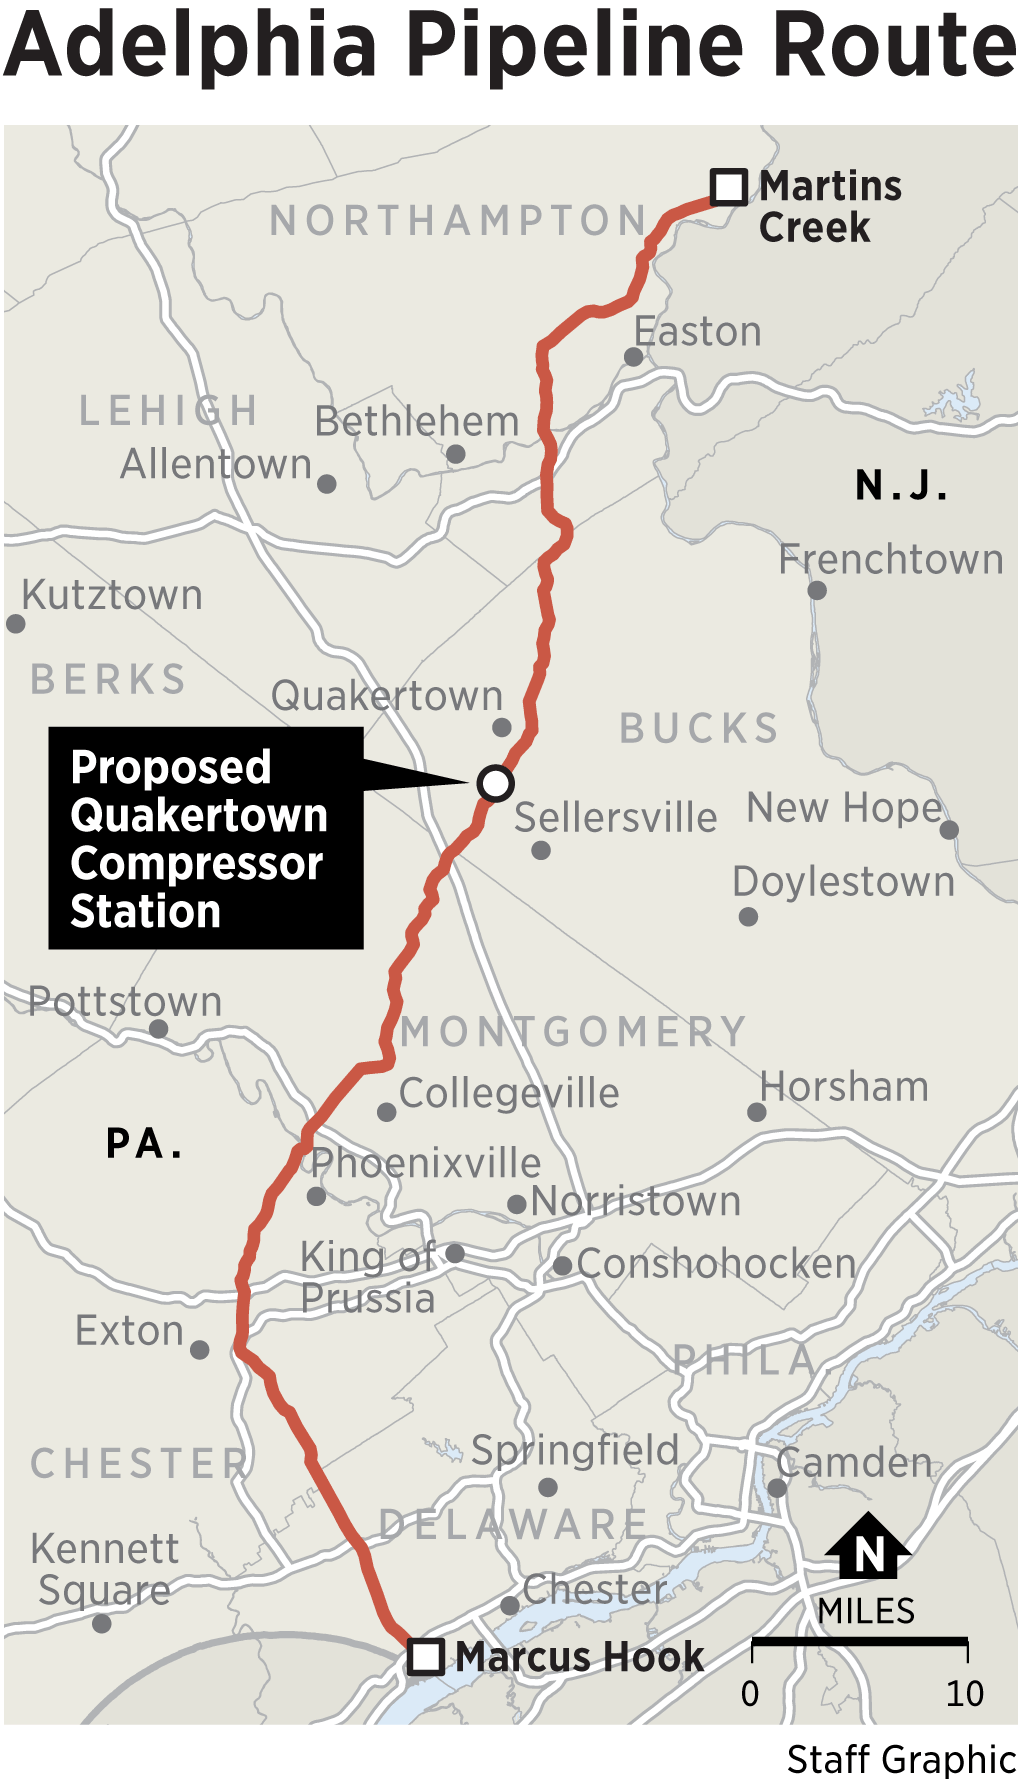 Delaware County pipeline study finds risk less than fatal car crash